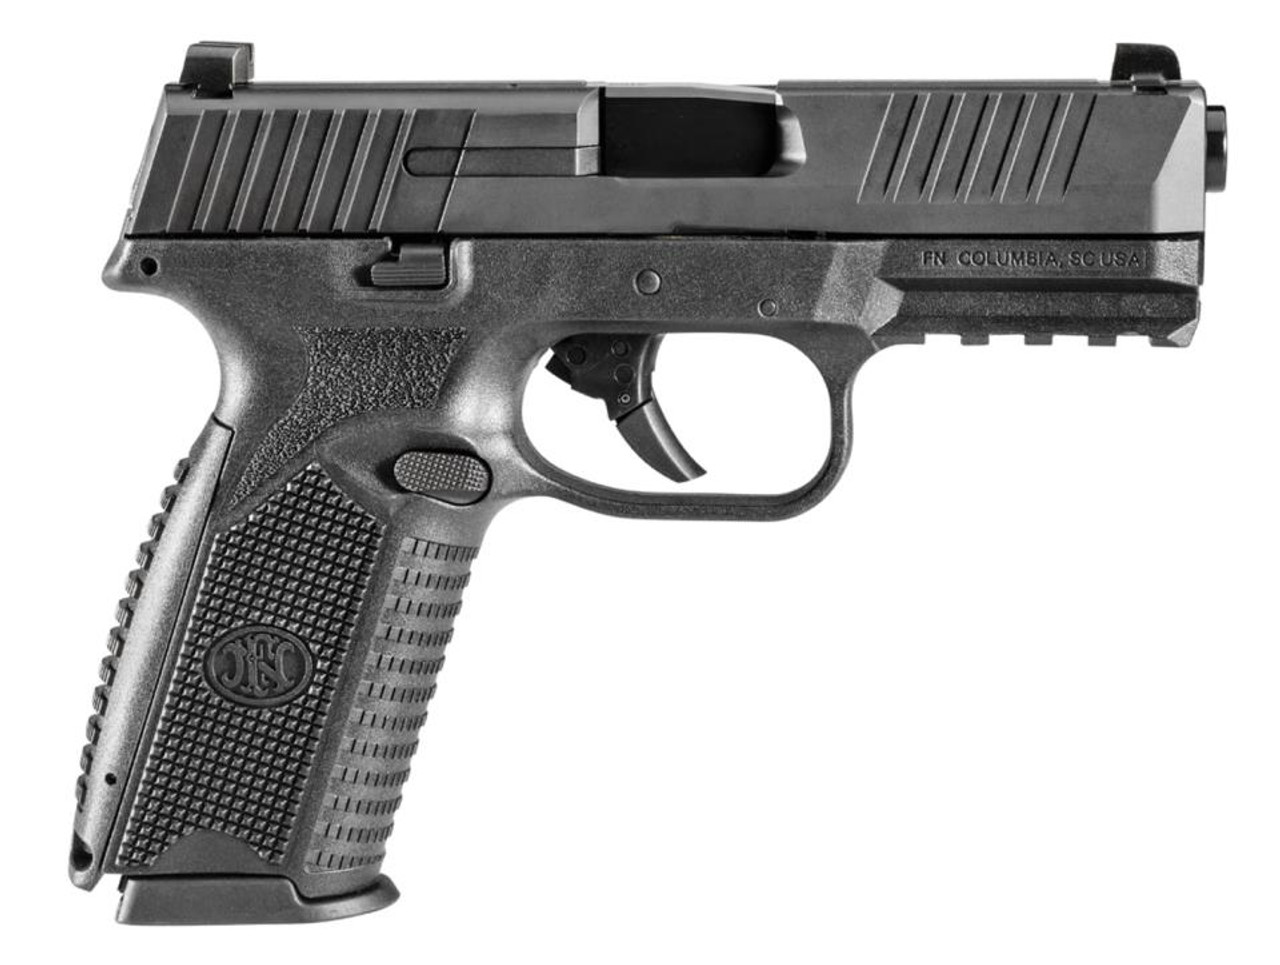 fn 509 double 9mm 4 barrel double action non manual safety 17rd